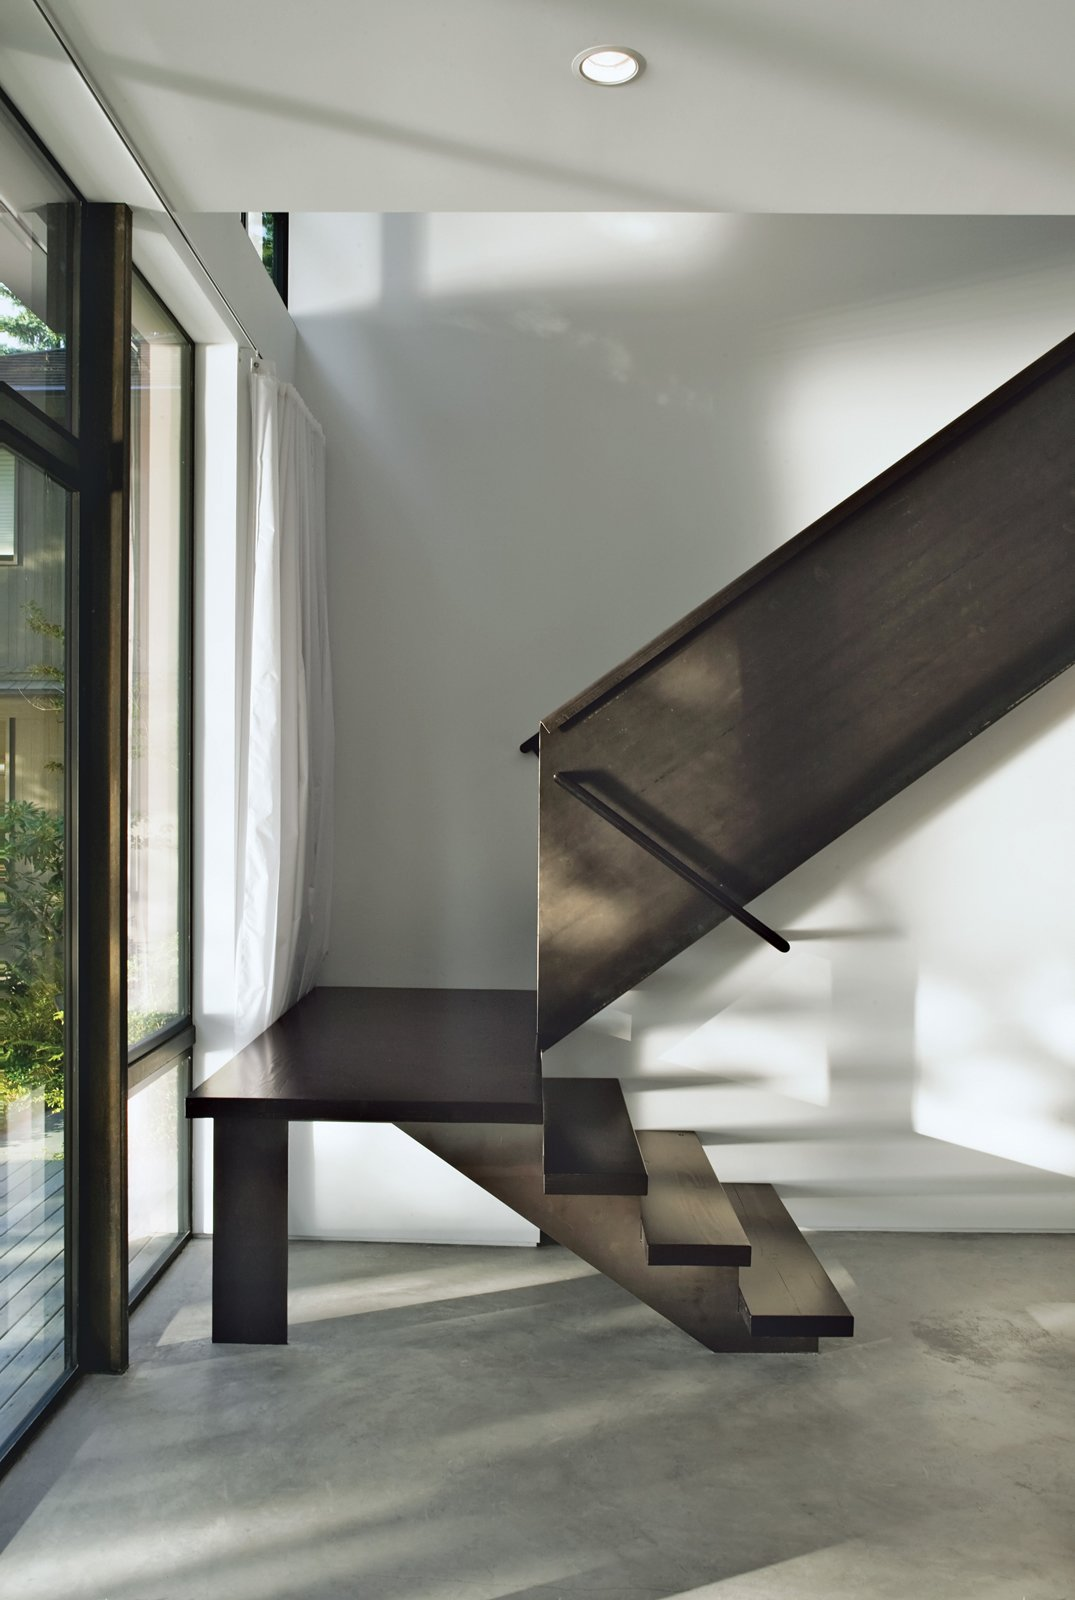 Steel allowed Kunding to be playful with the staircase's form. Tagged: Staircase.  190+ Best Modern Staircase Ideas by Dwell from Staircases We Love